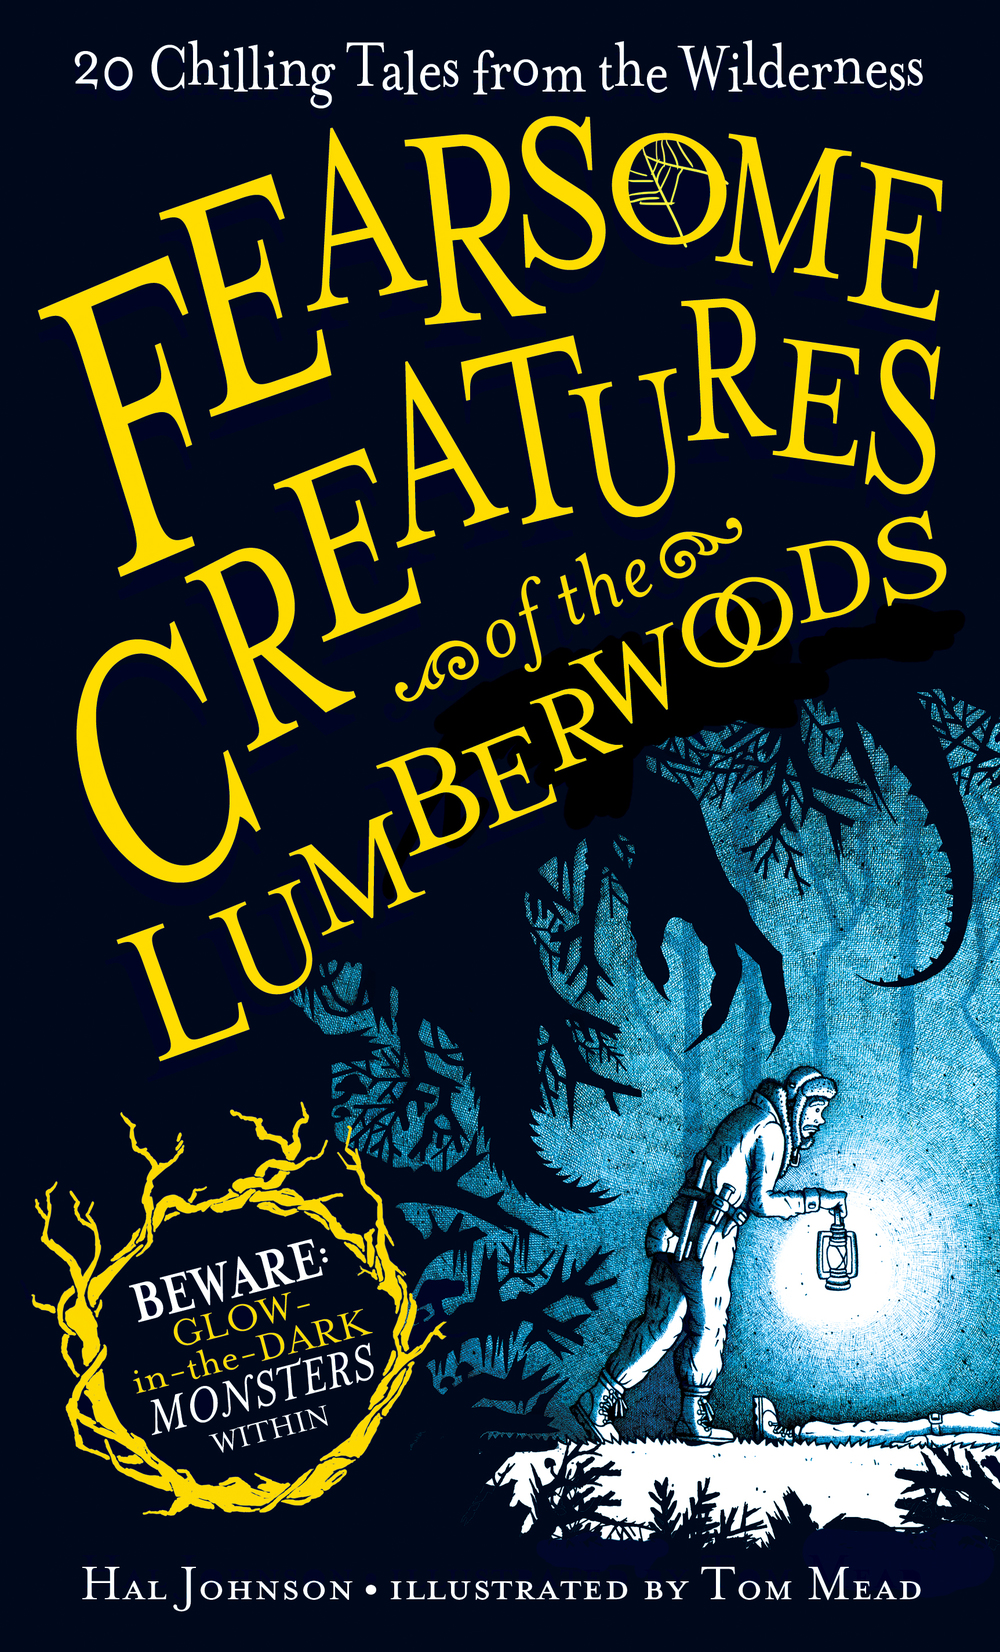 Fearsome Creatures of the Lumberwoods by Hal Johnson Illustrated by Tom Mead